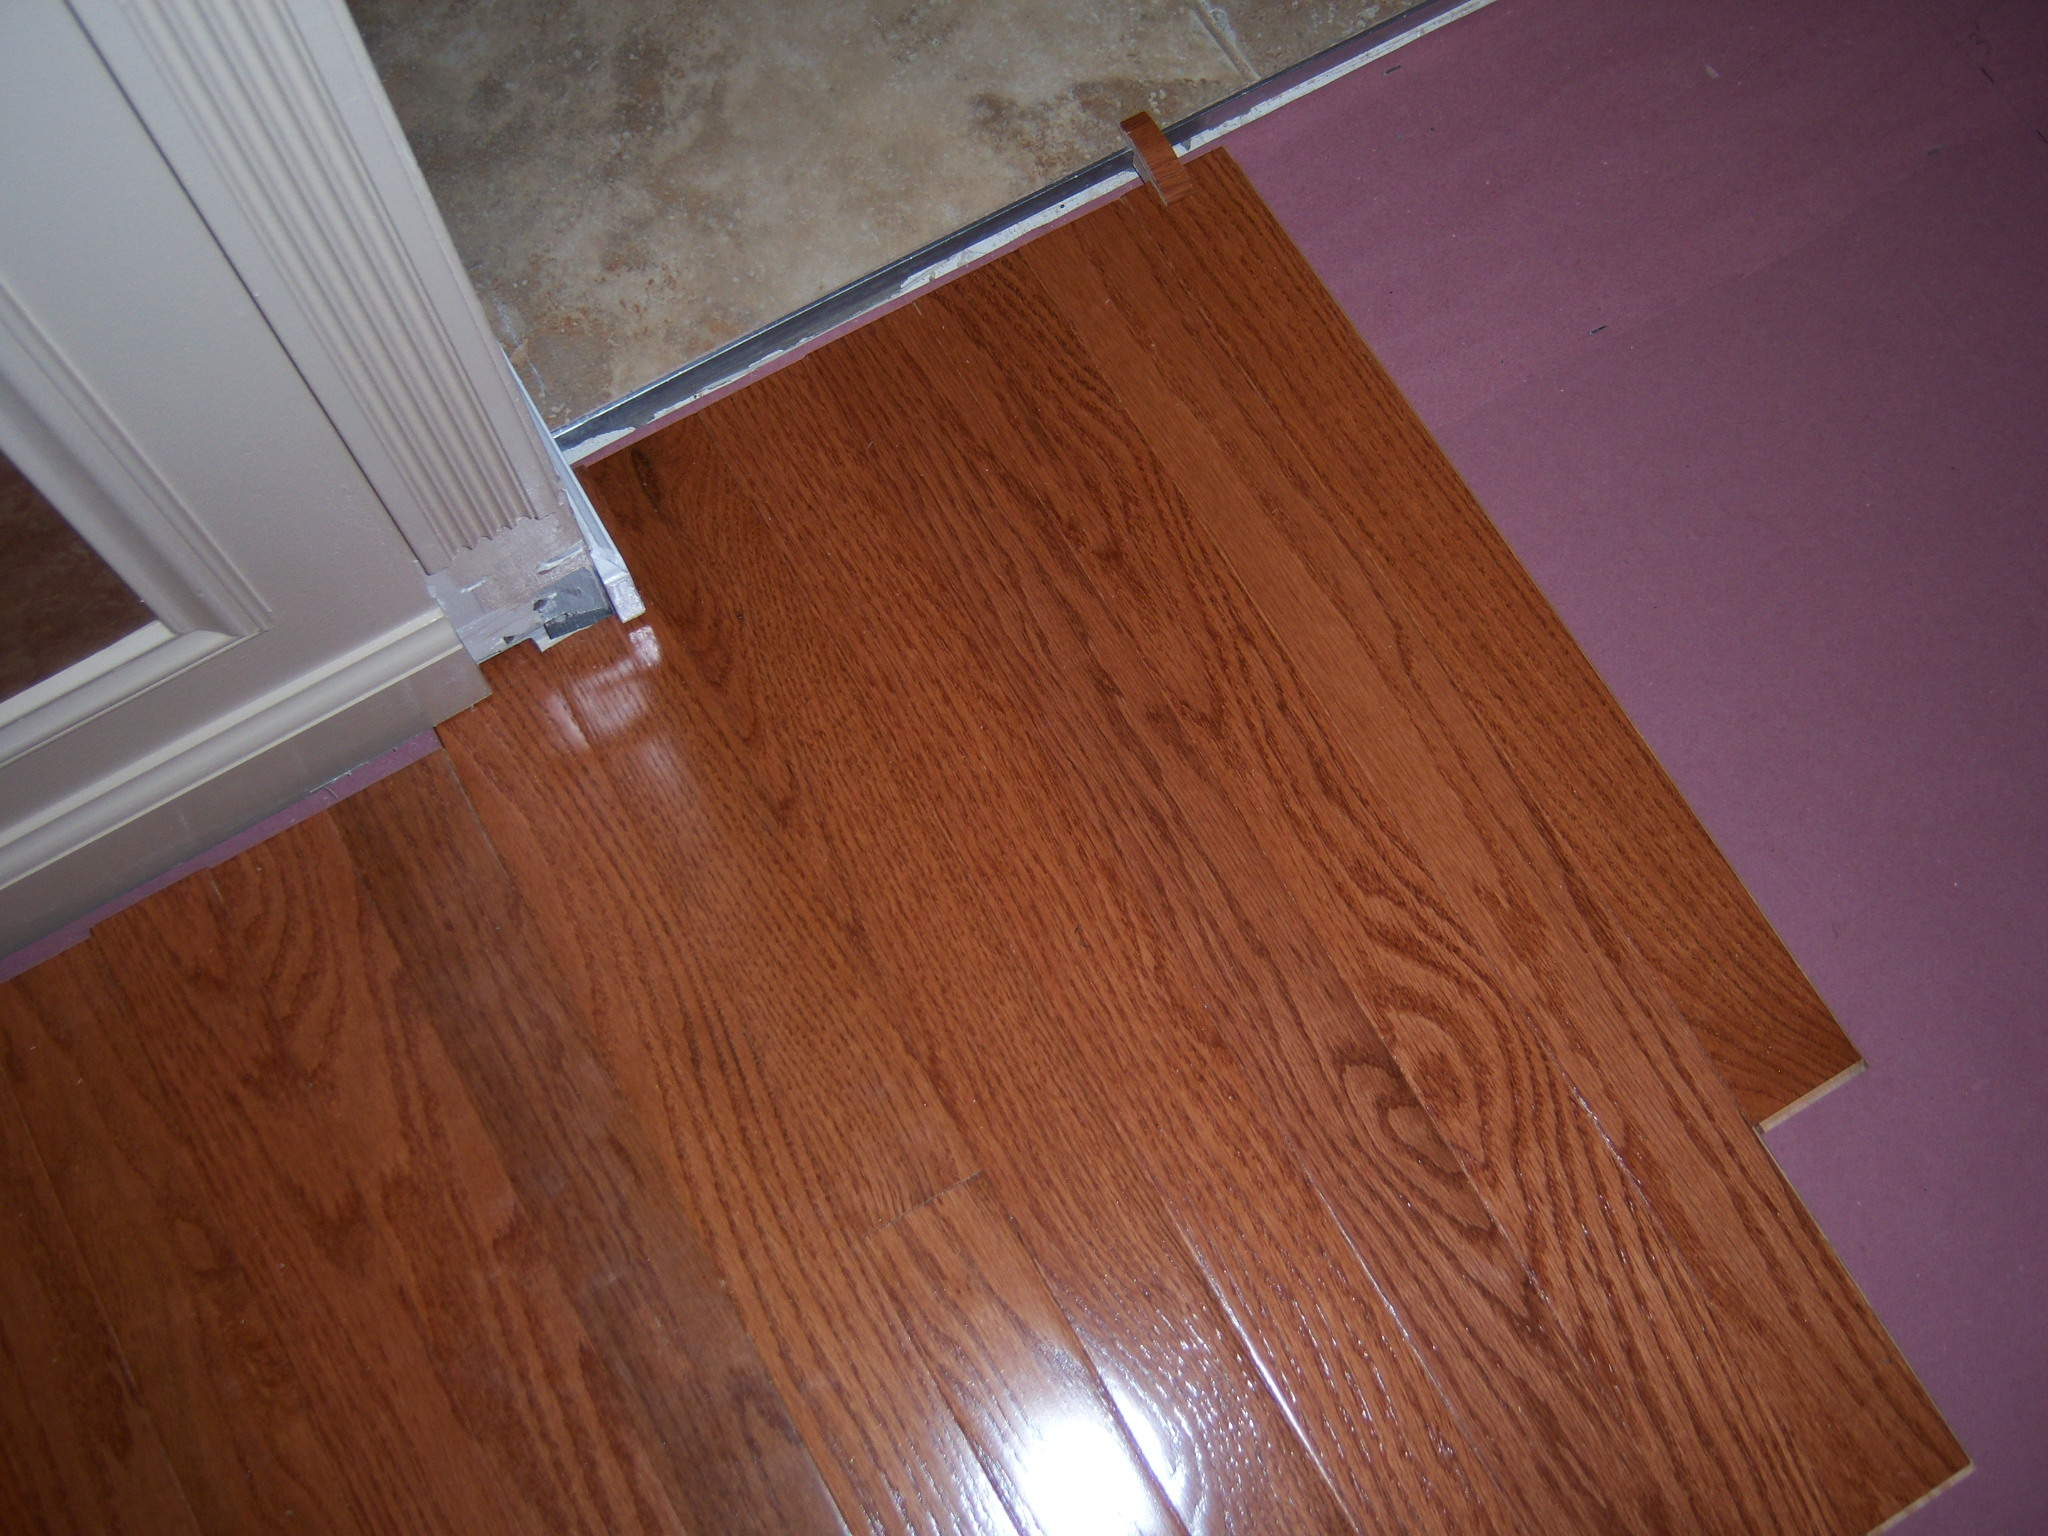 Hardwood Floor Installation and Trim Work - All About The House